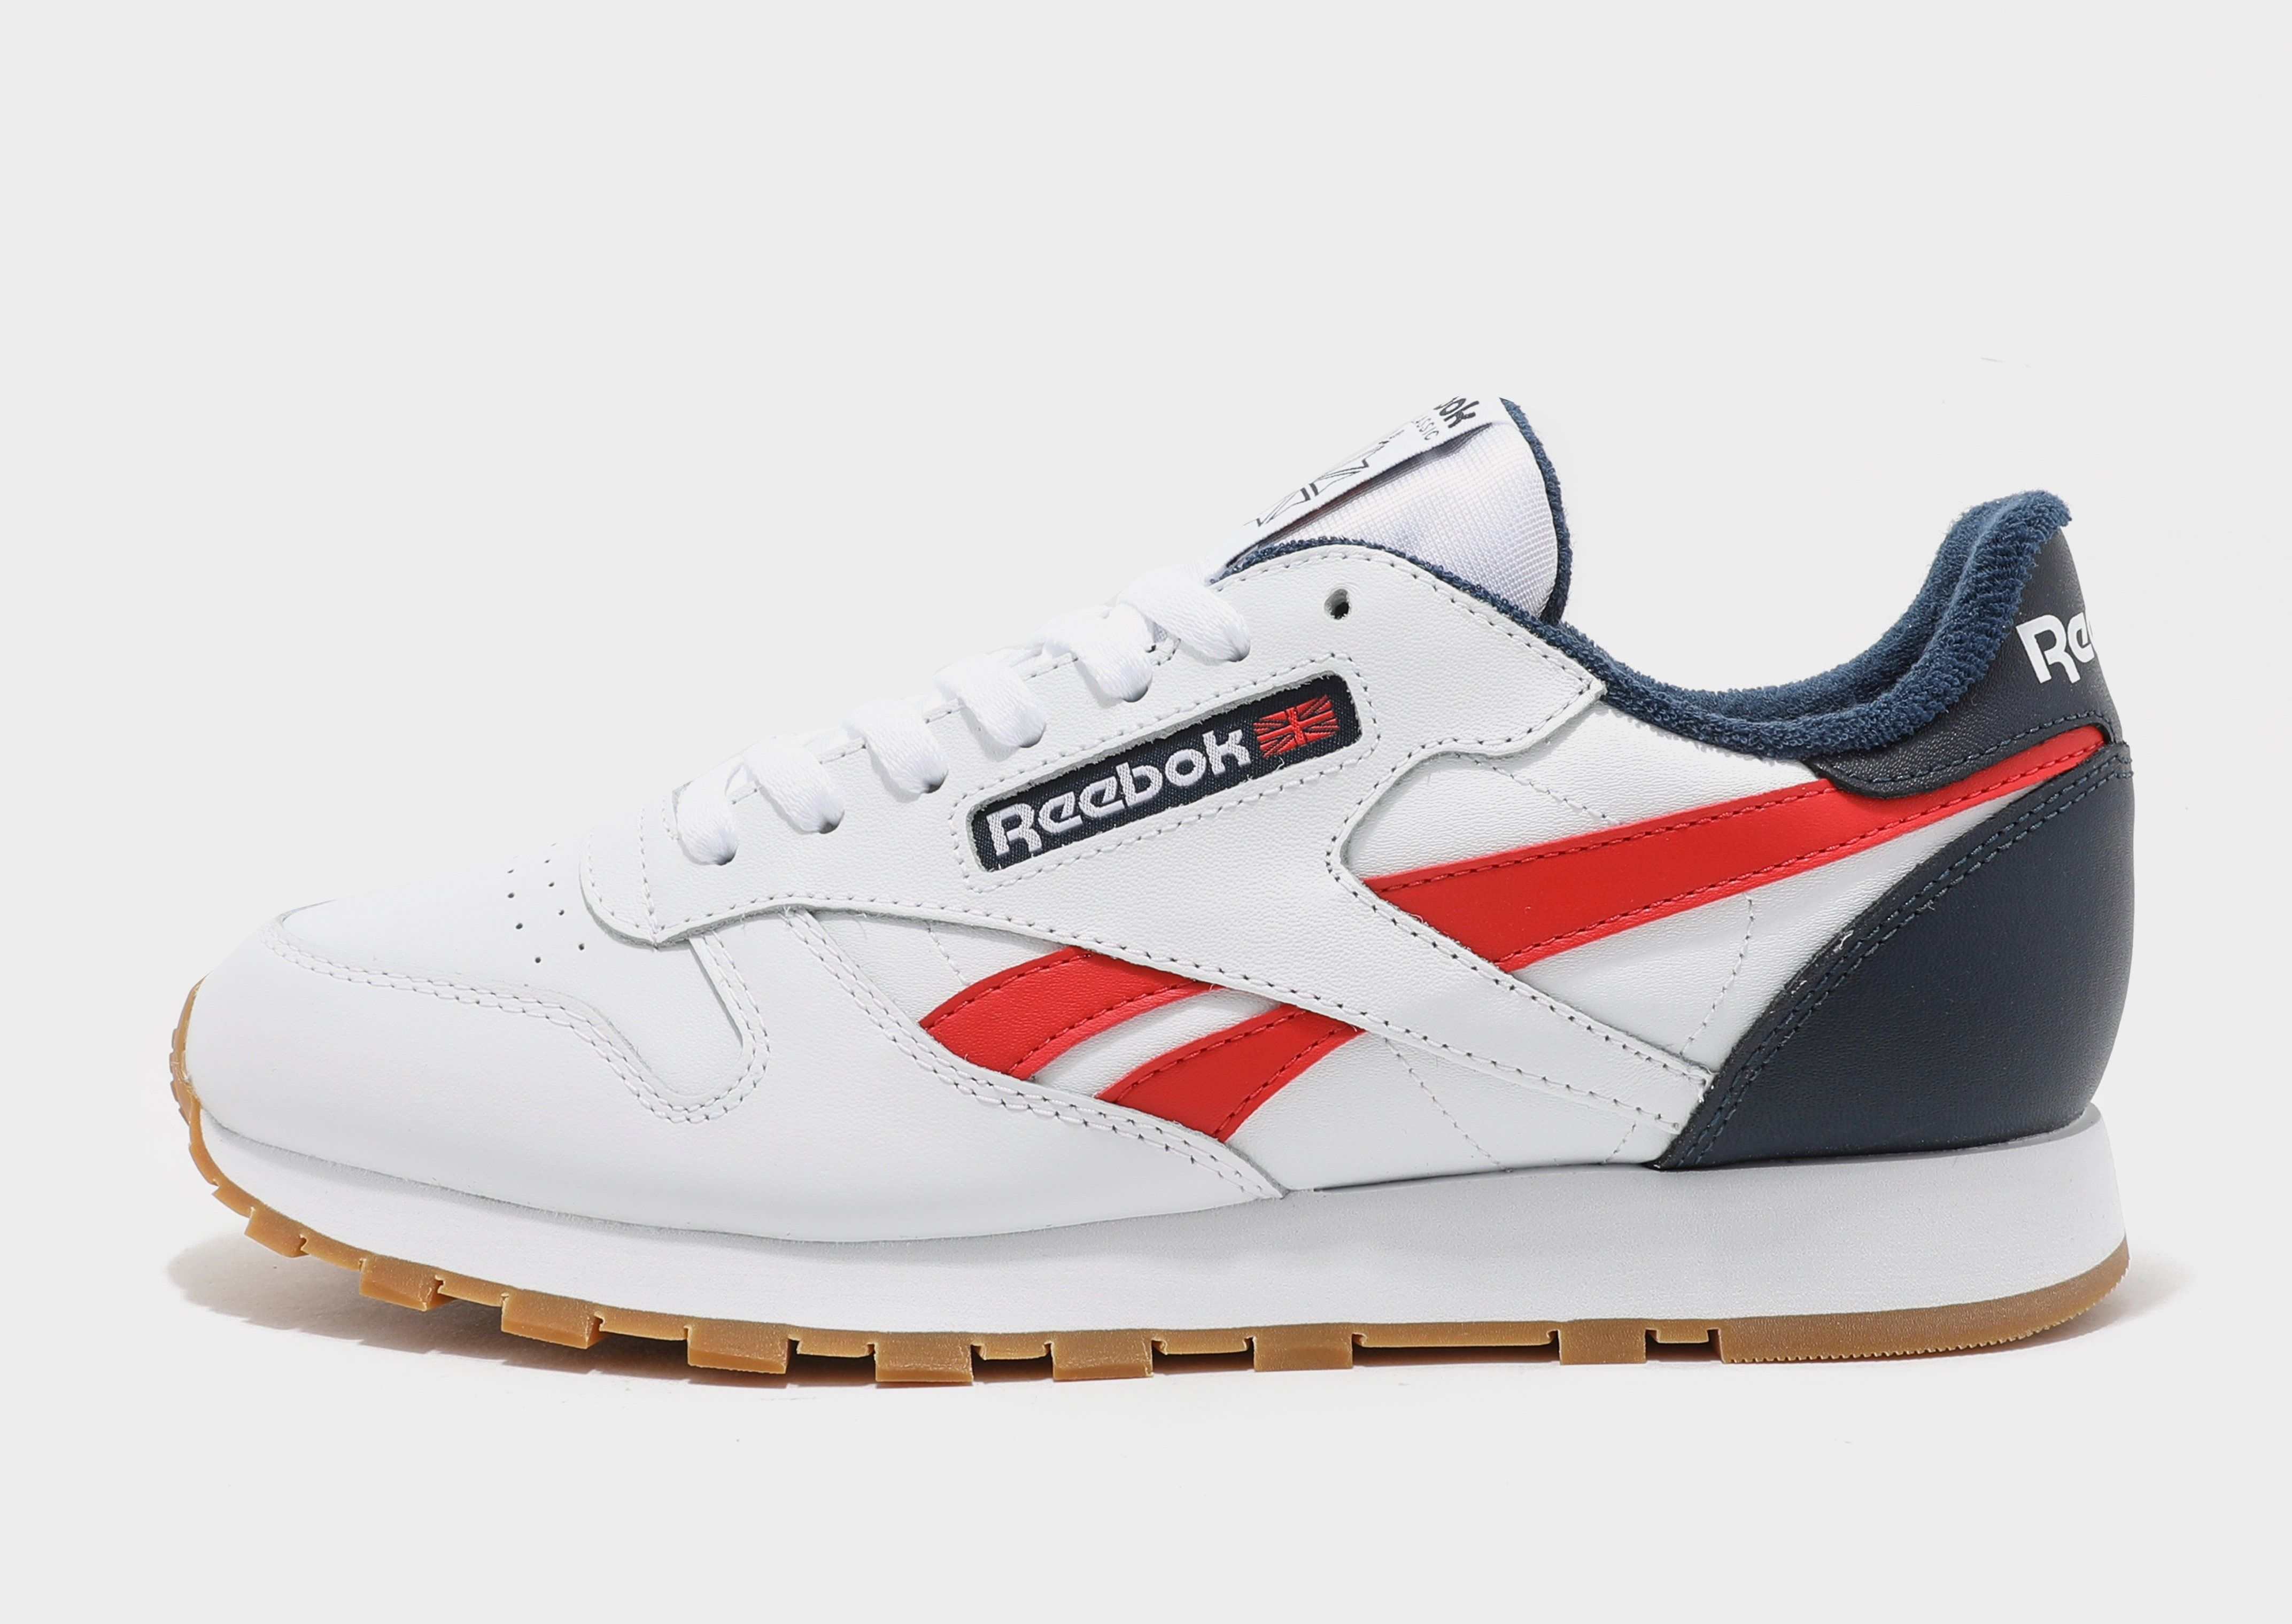 Buy Reebok Classic Leather Shoes JD Sports in 2020